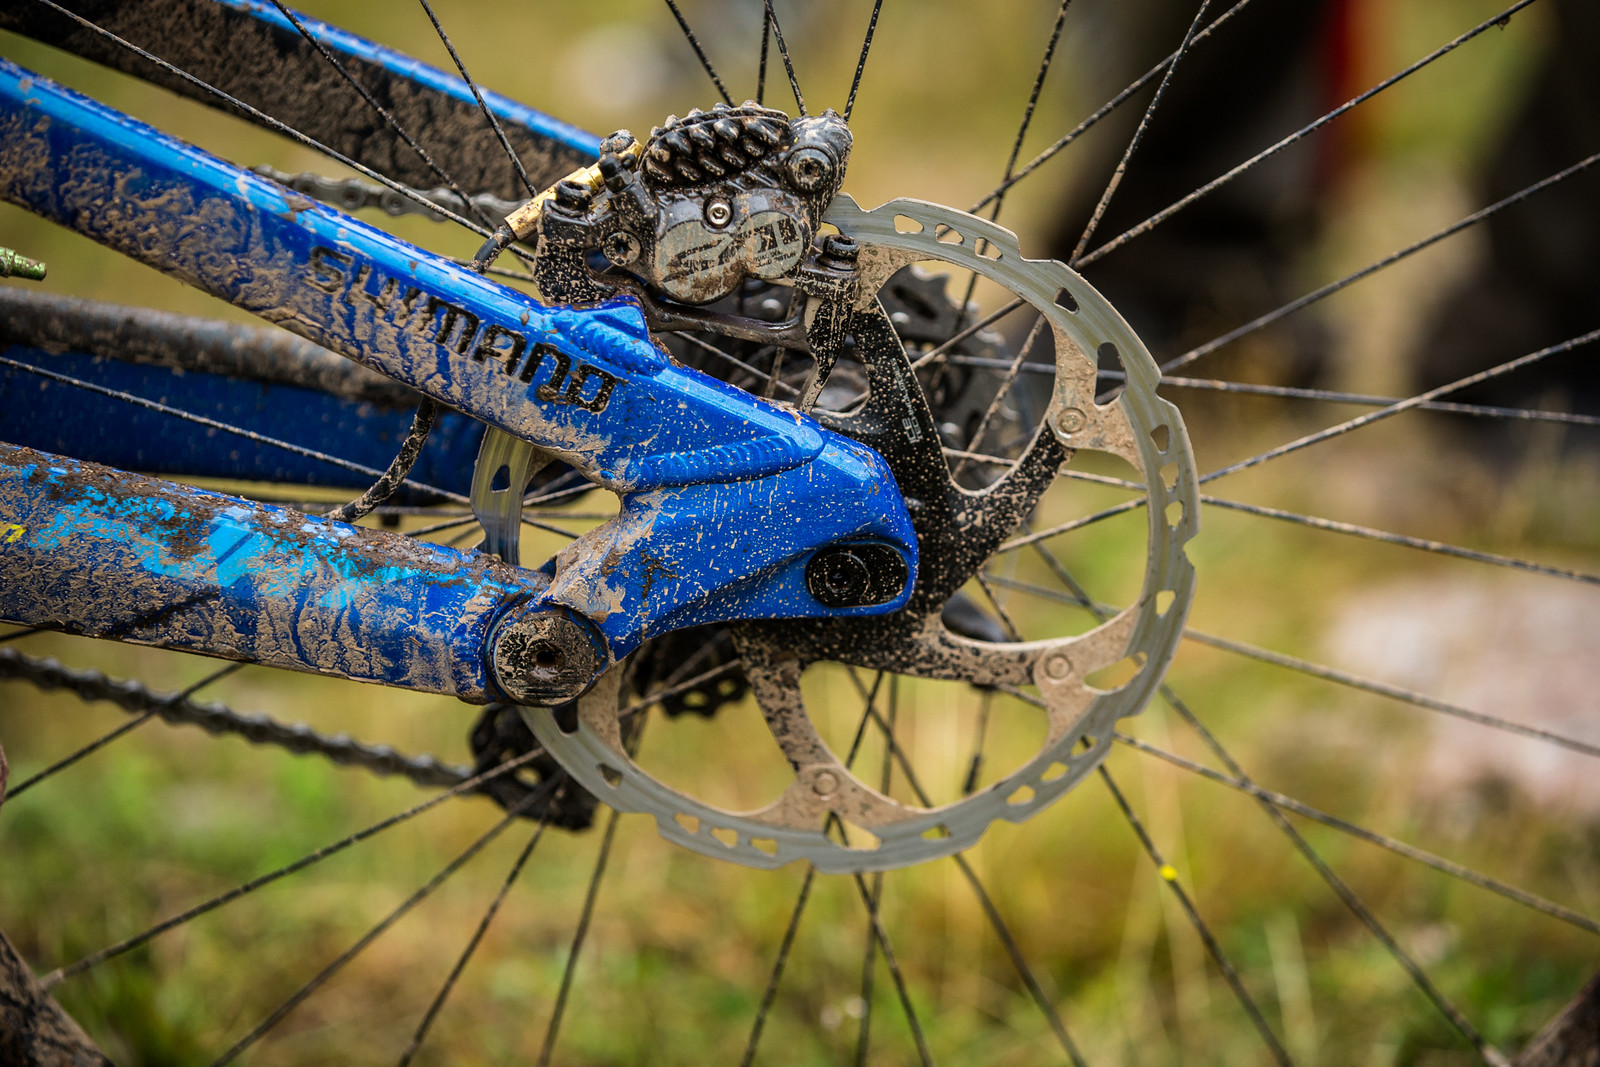 Shimano Saint Brakes - WINNING BIKE - Martin Maes' GT Fury - Mountain Biking Pictures - Vital MTB